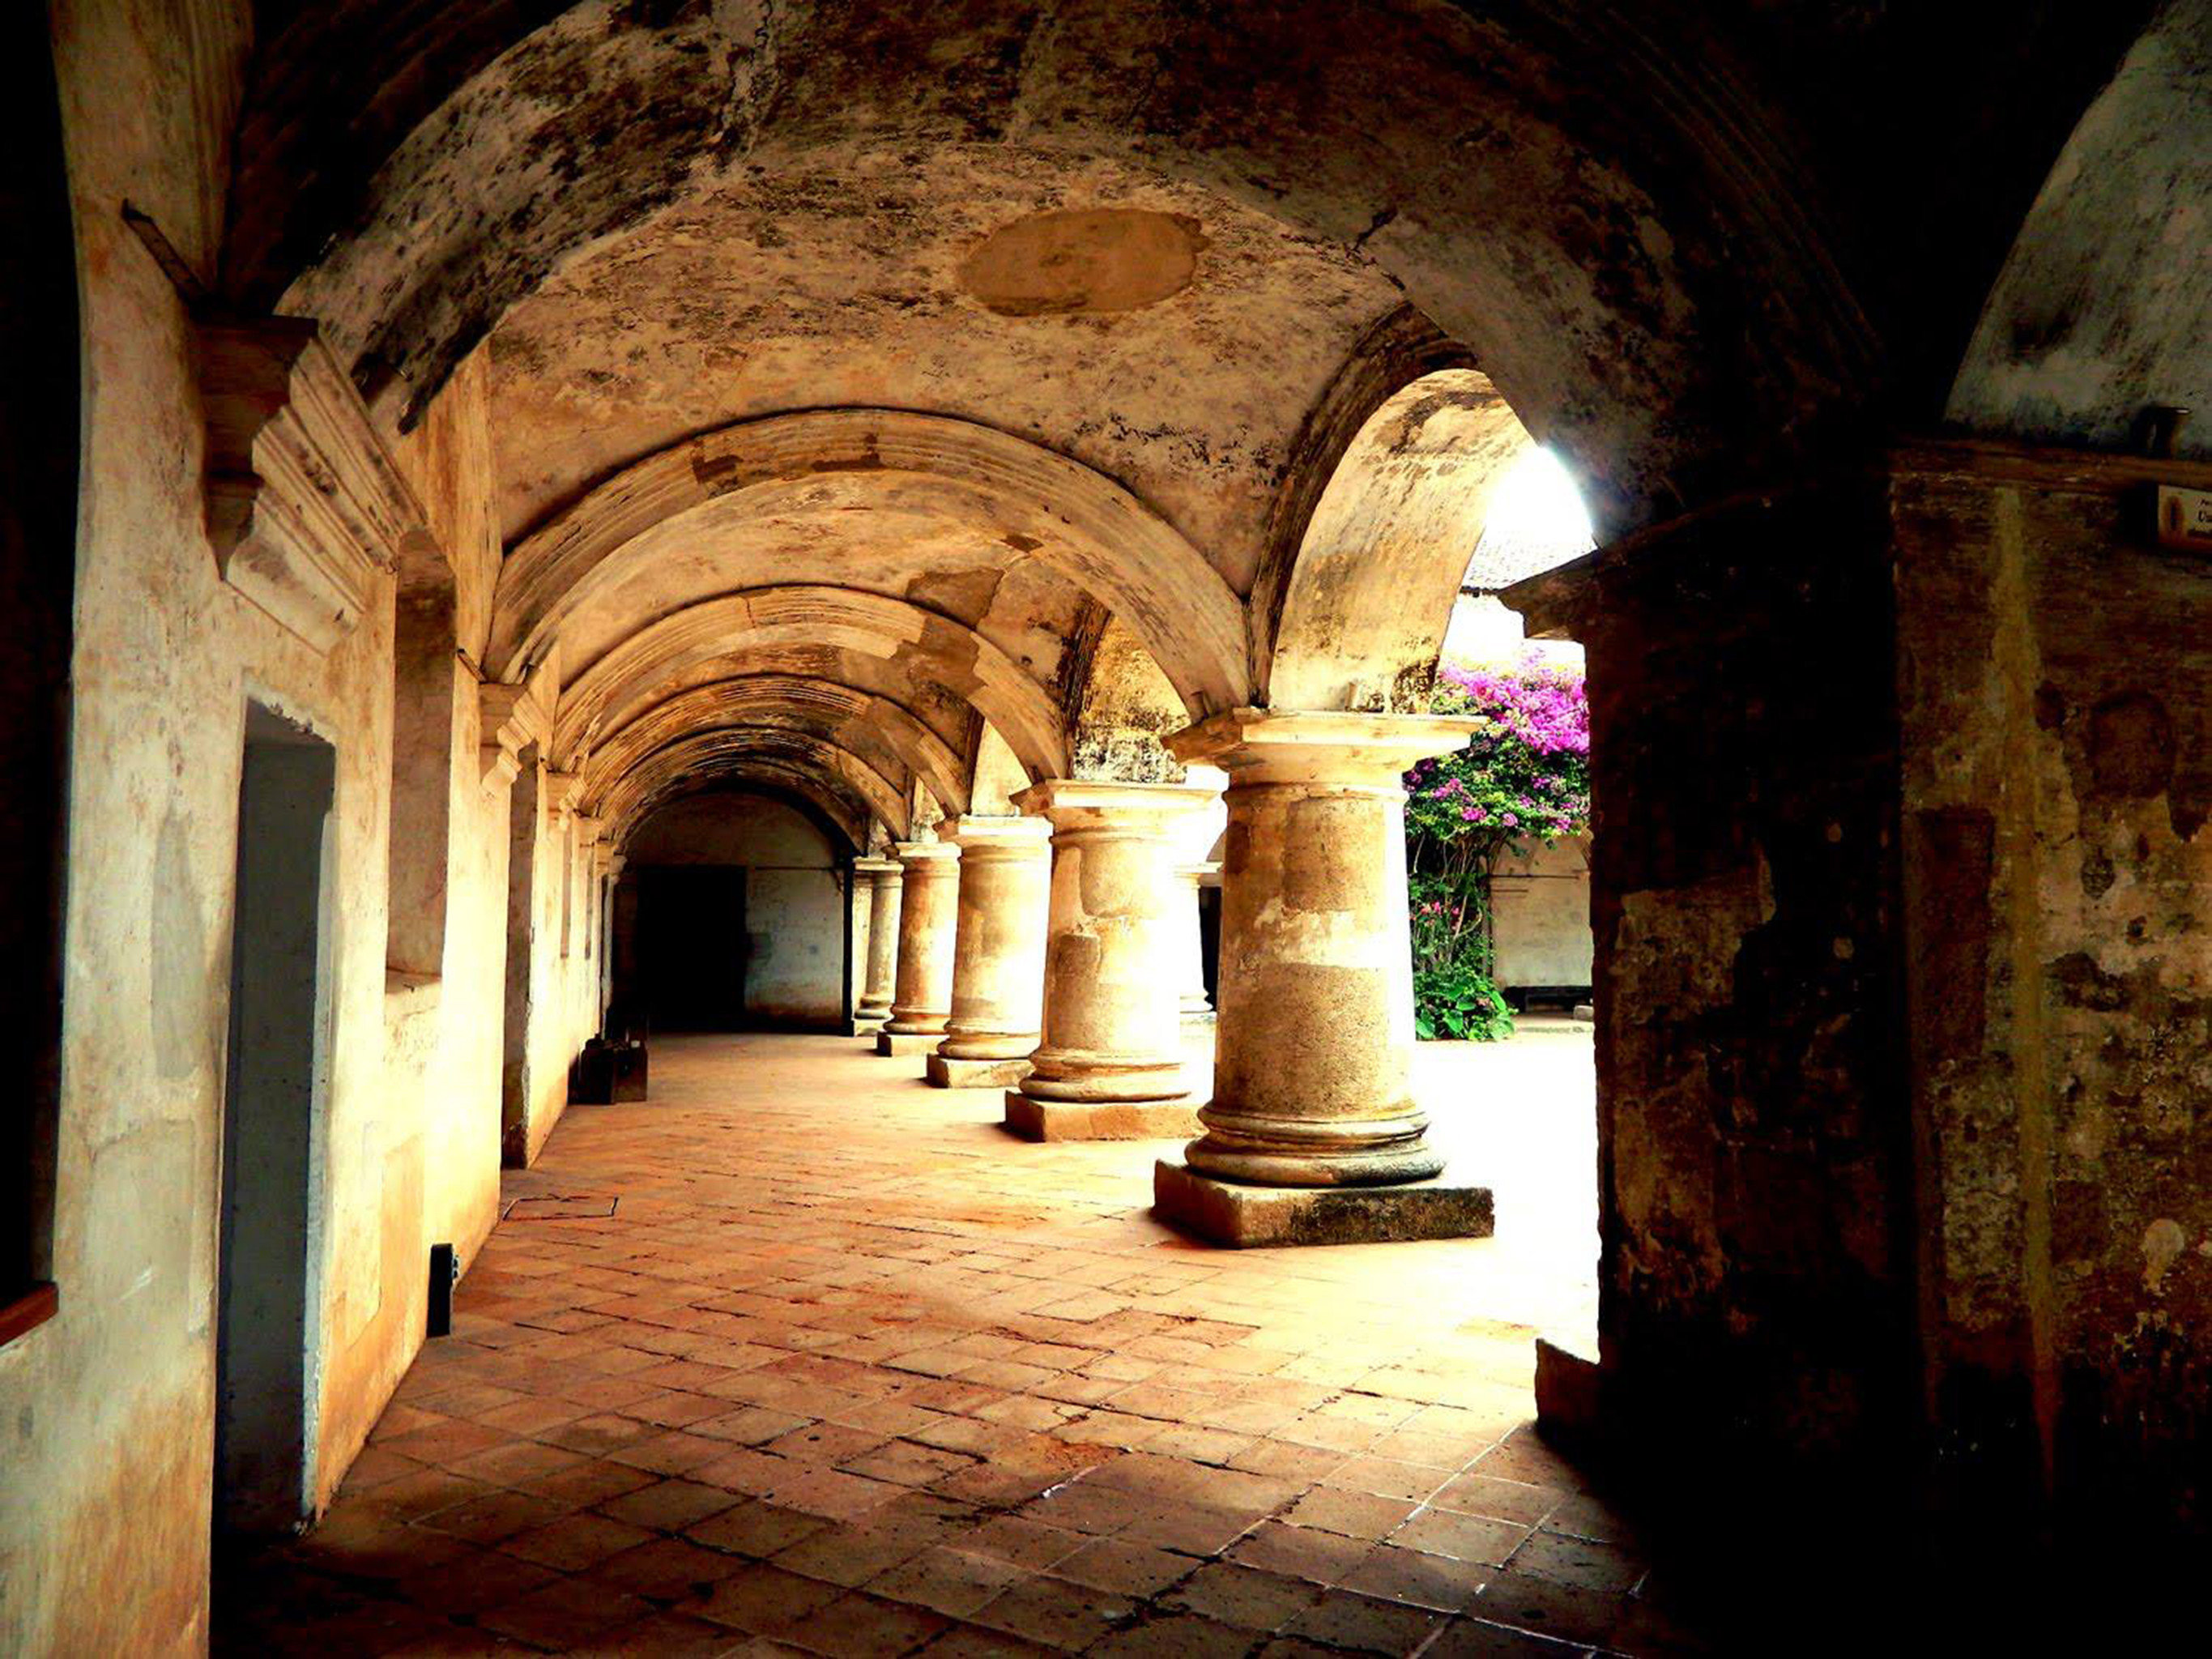 Architecture Buildings Exterior Historic Romantic Rustic building ancient history stone crypt monastery arch temple middle ages place of worship Ruins history abbey chapel walkway colonnade column